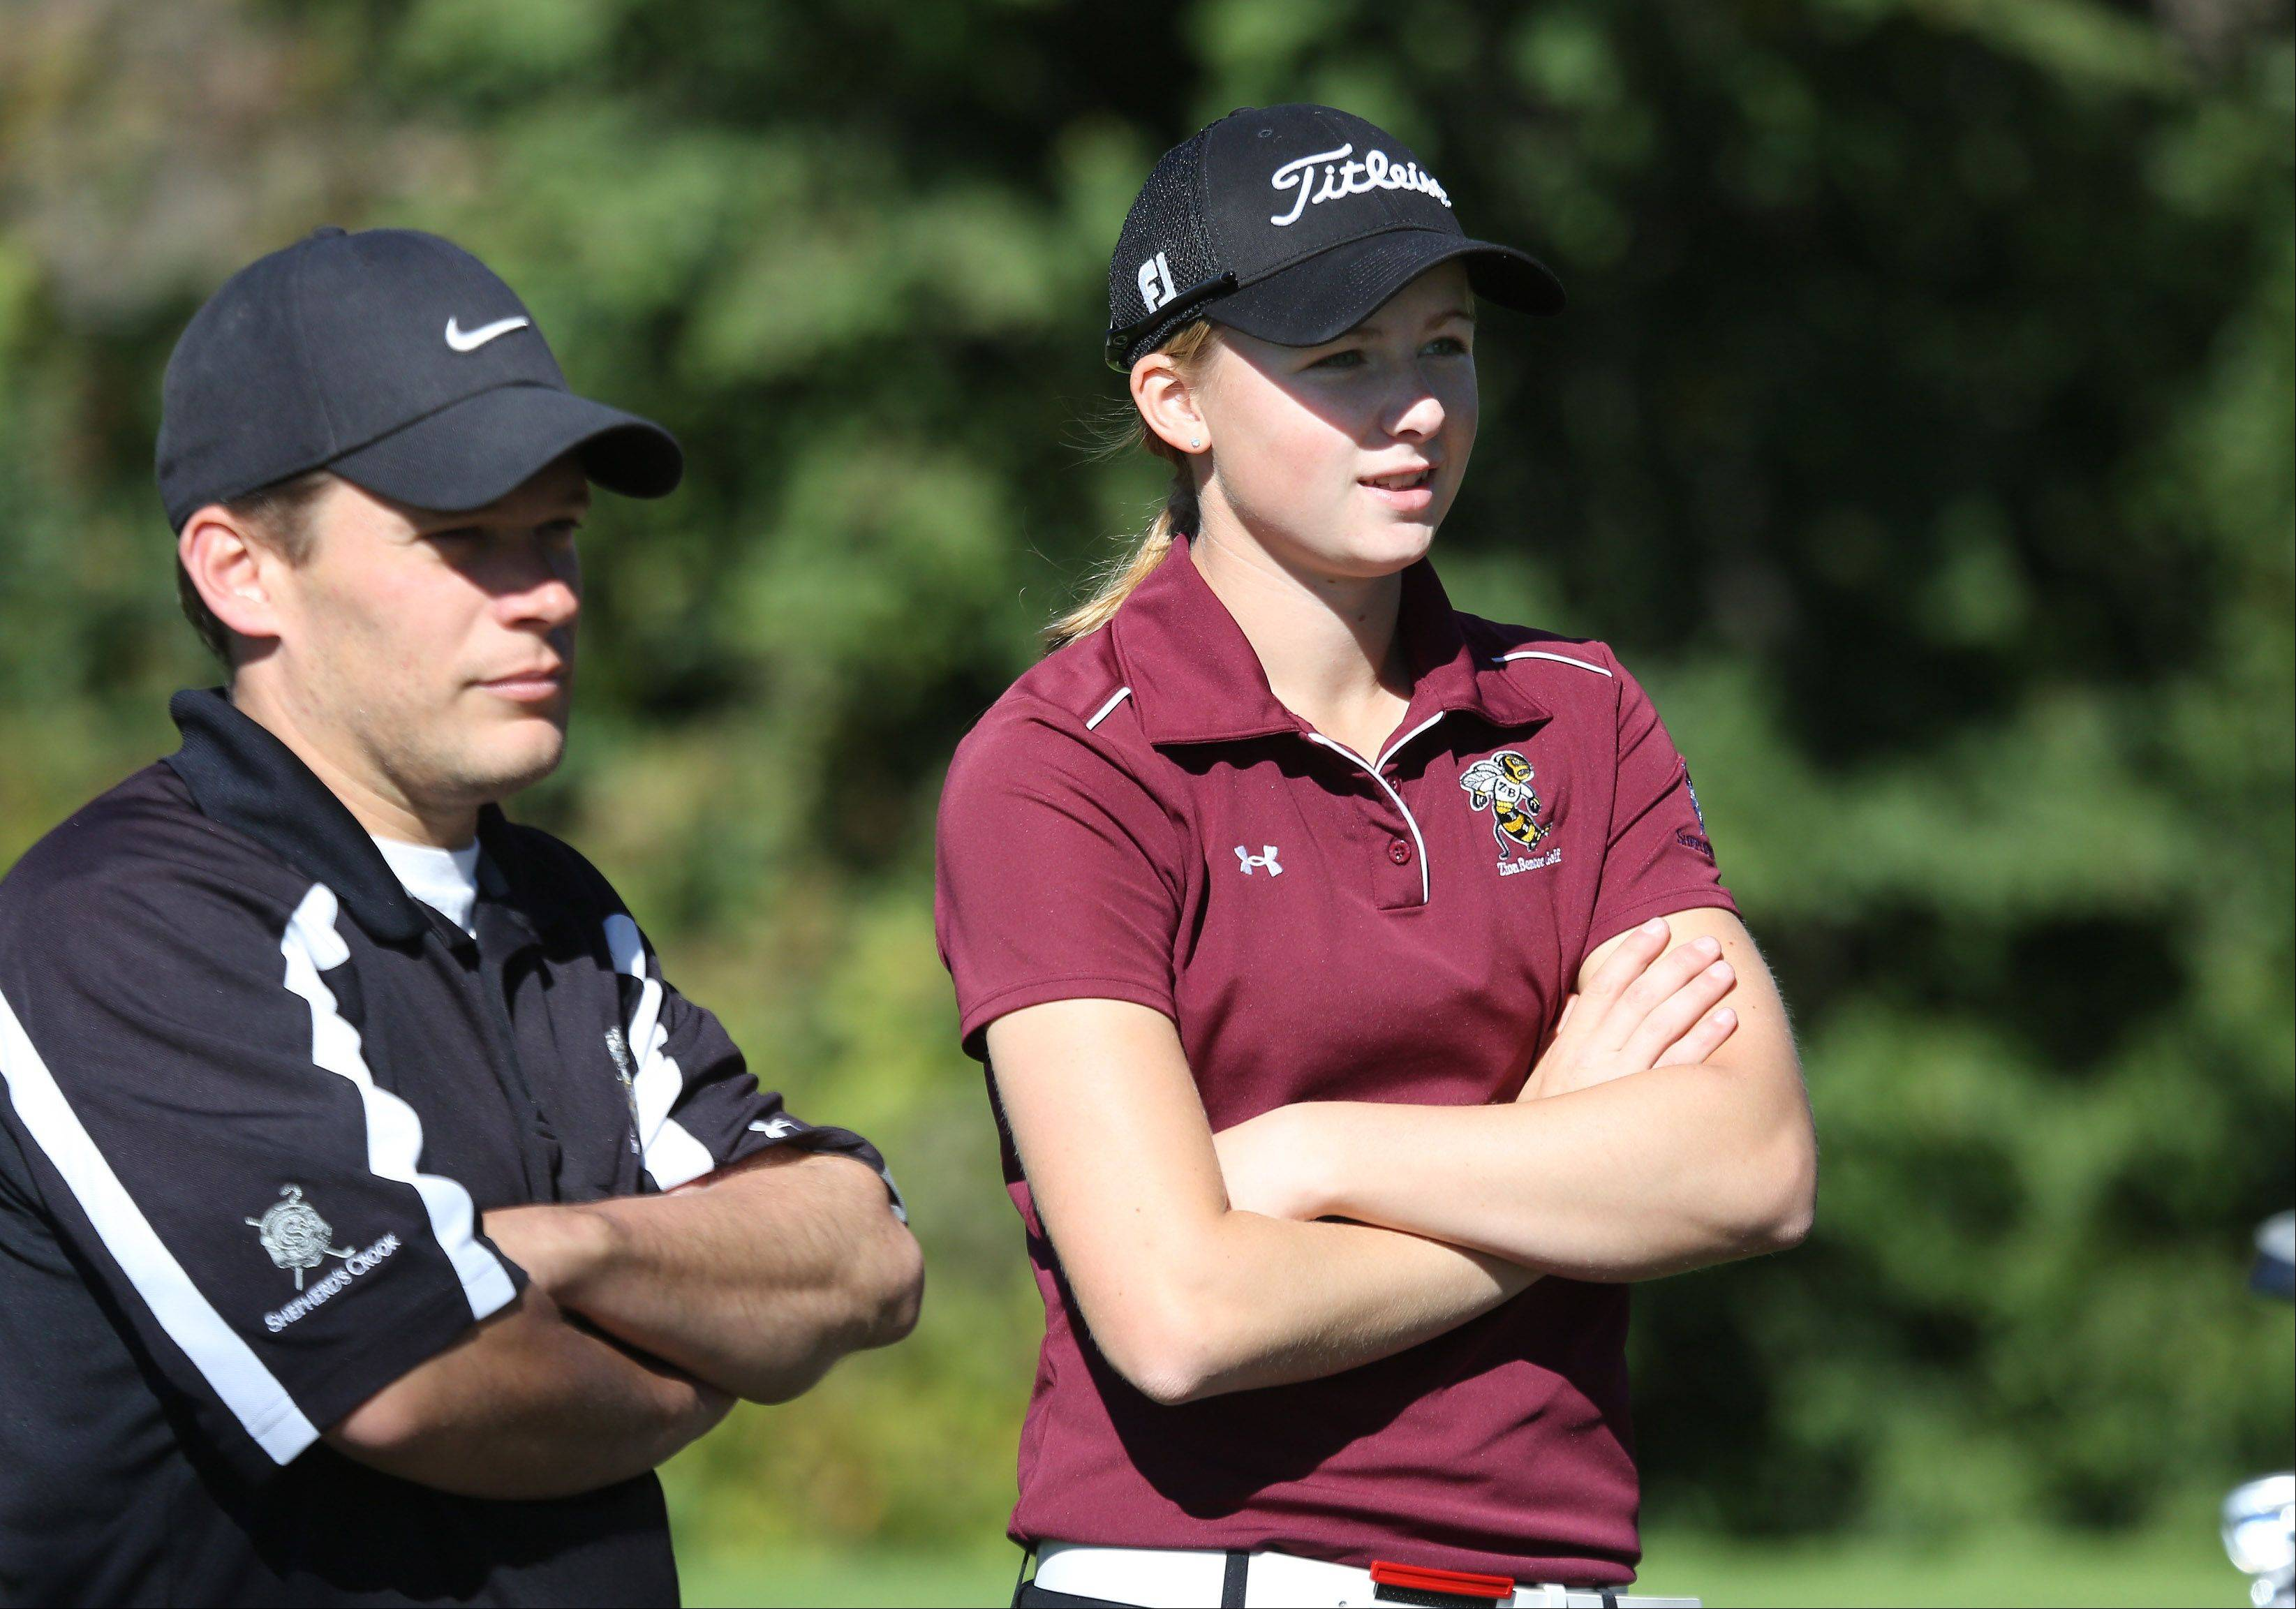 Zion-Benton golfer Morgan Kukla talks to her coach during the Class AA Carmel girls golf regional tournament Wednesday at Bonnie Brook.